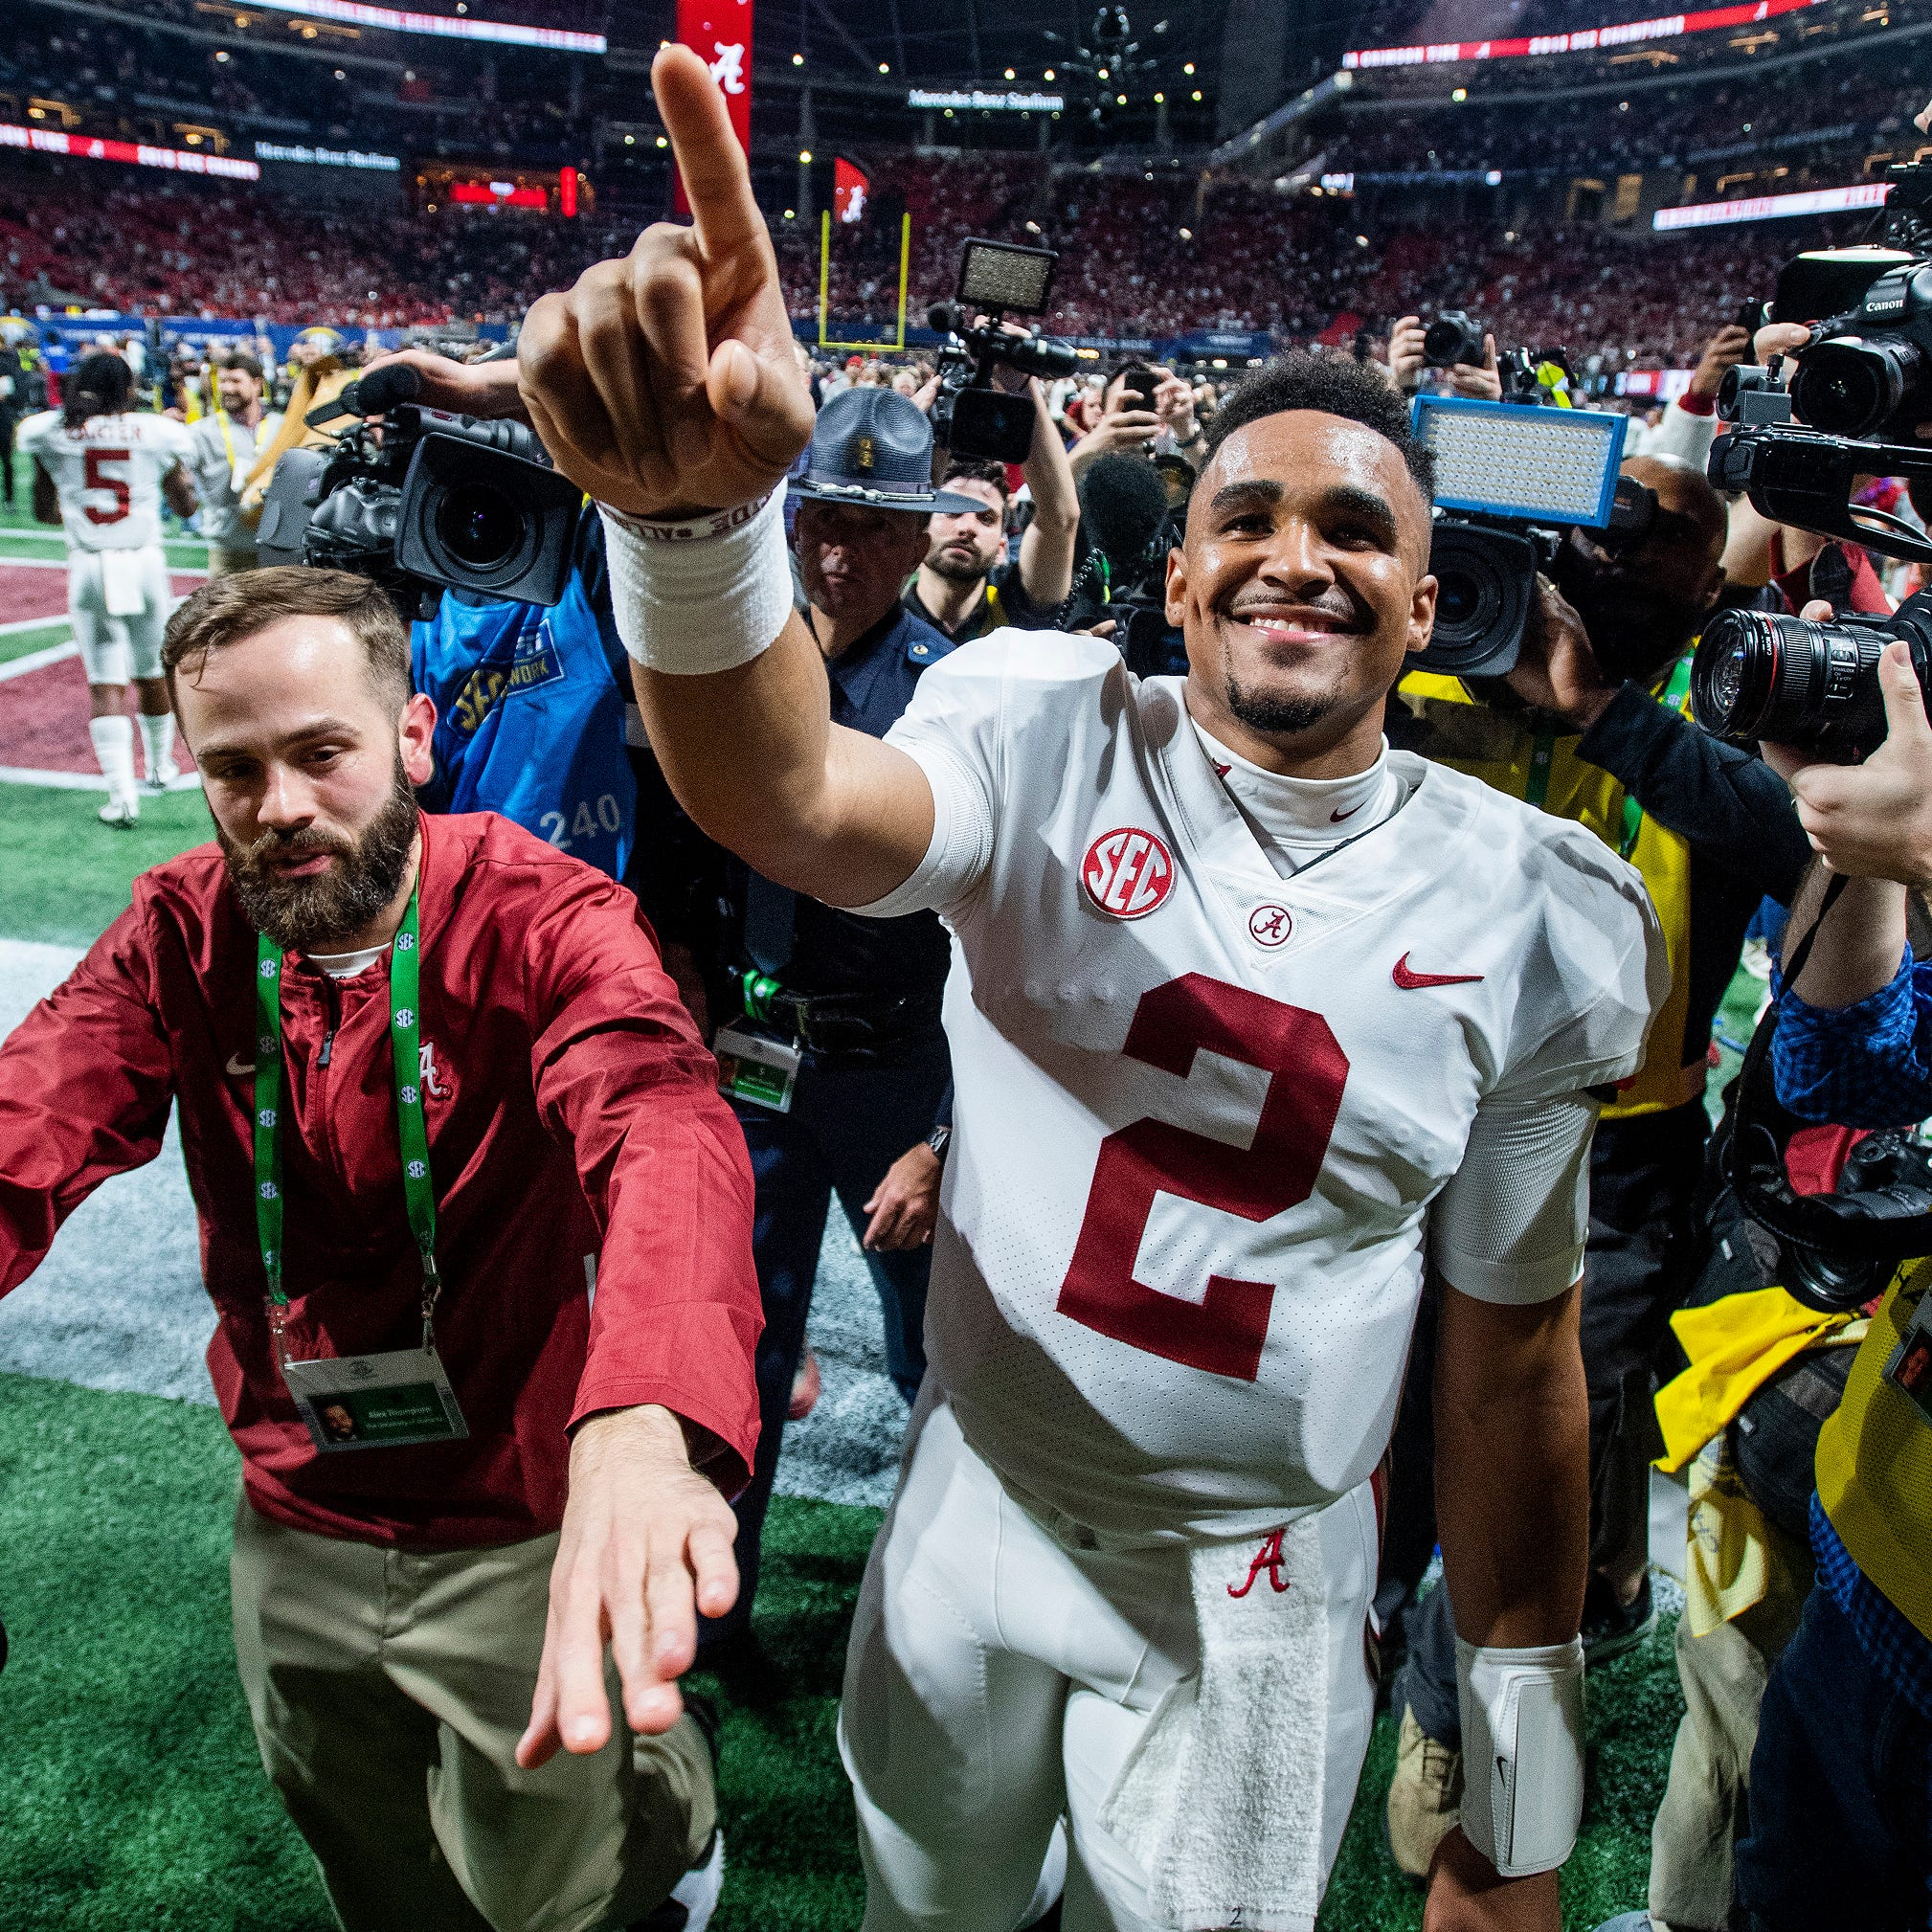 Alabama QB Jalen Hurts headed to Oklahoma as grad transfer